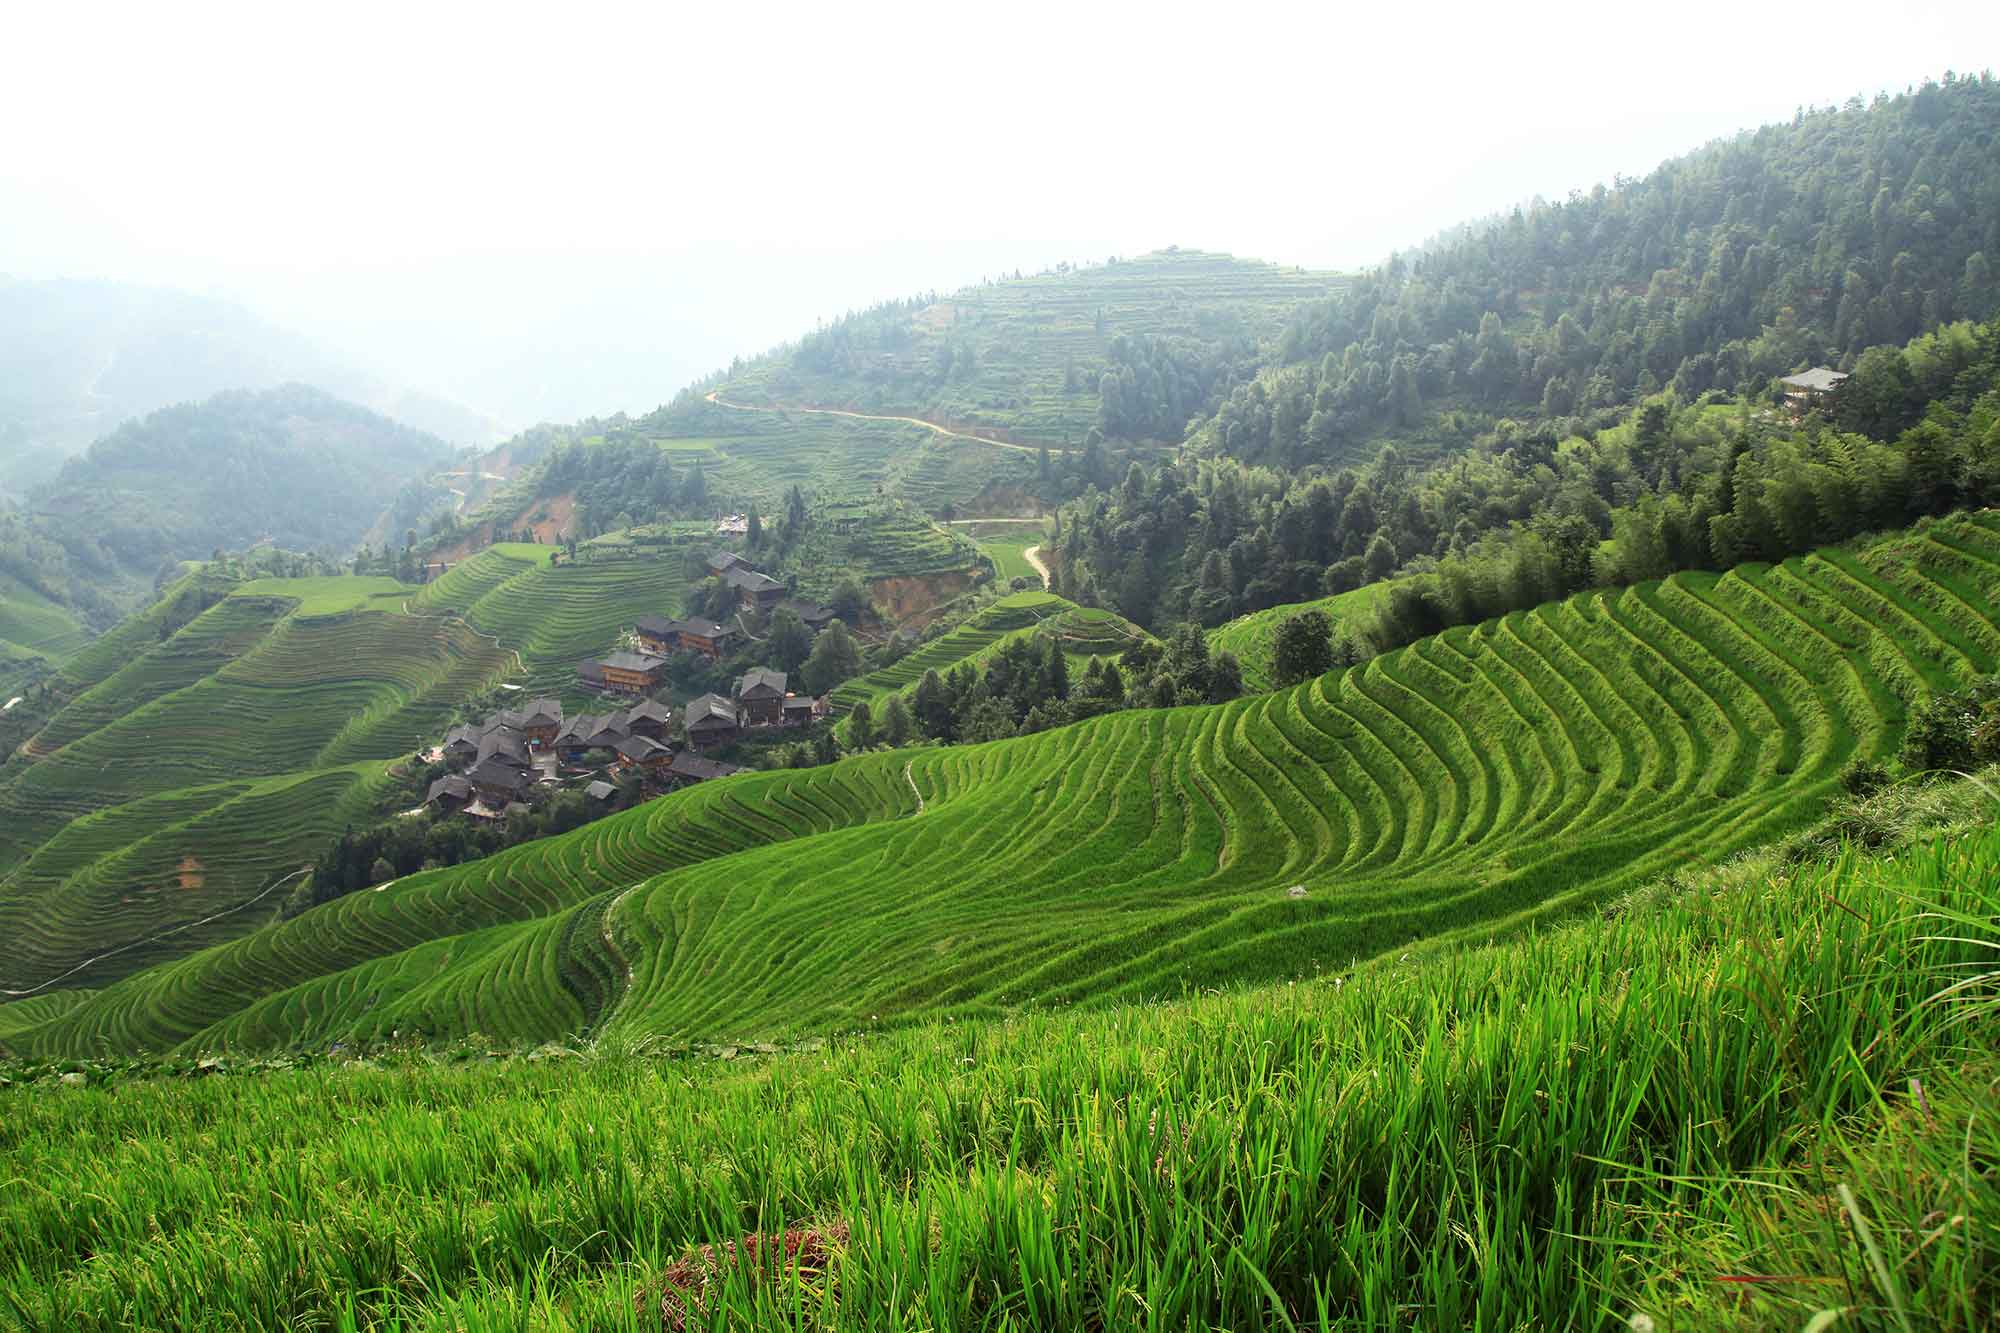 dazhai-village-longji-rice-terraces-guangxi-china